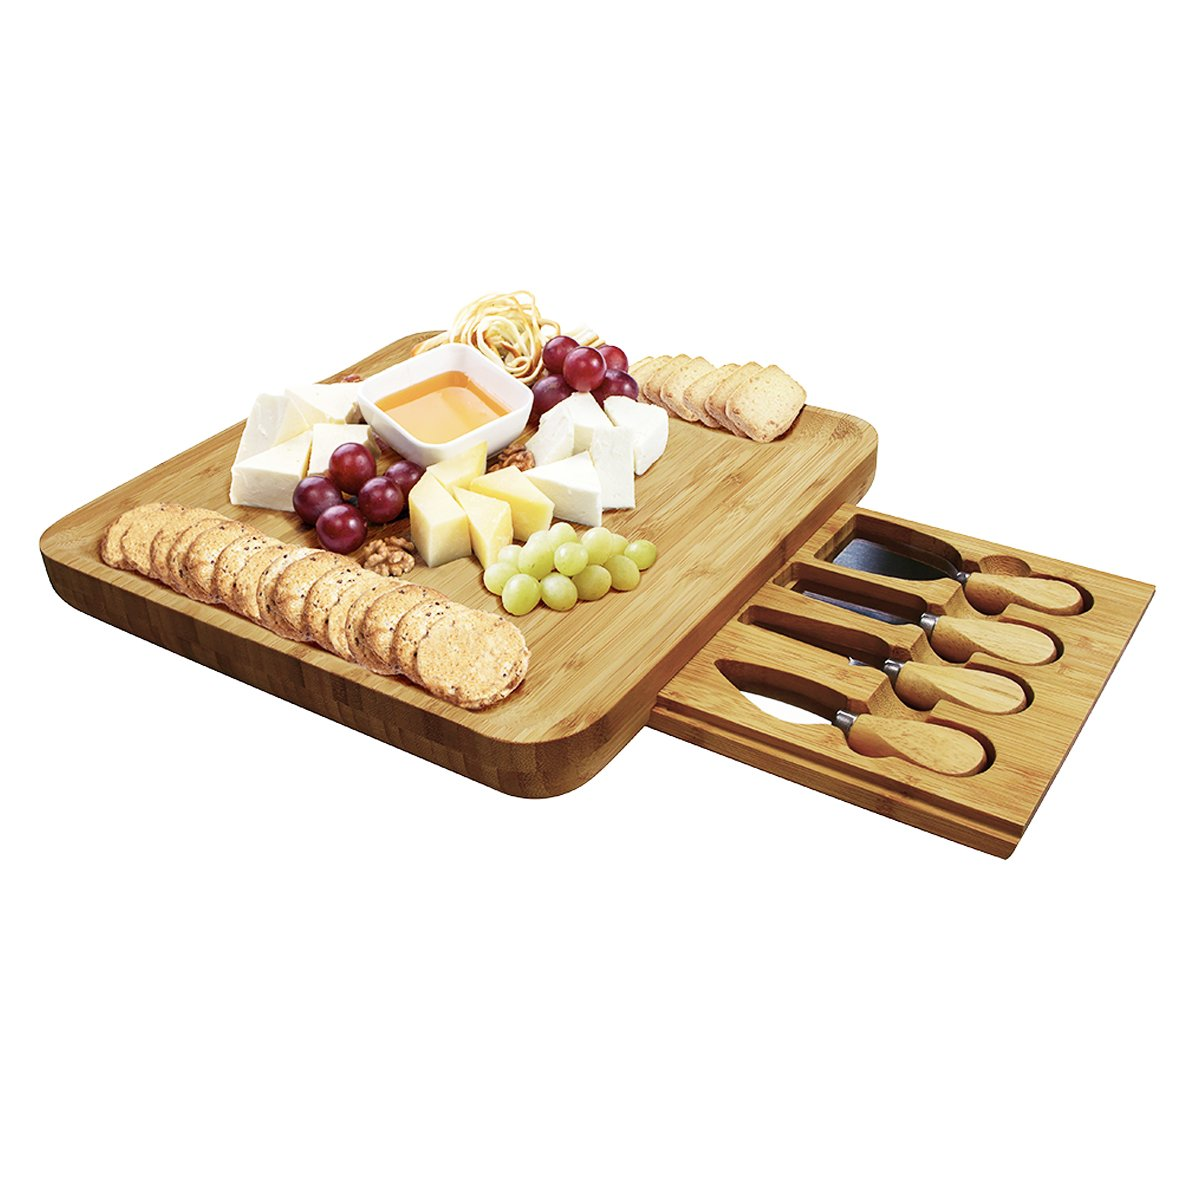 100% Natural Grain Bamboo Cutting Board Set Cheese Tray with Utensil Drawer Organizer 4 Stainless Steel Cheese Knives (Serving Plate, Plate, Parmesan Cheese, Soft Cheese Knife Scraper) MINIS PLA-ZSB-EU